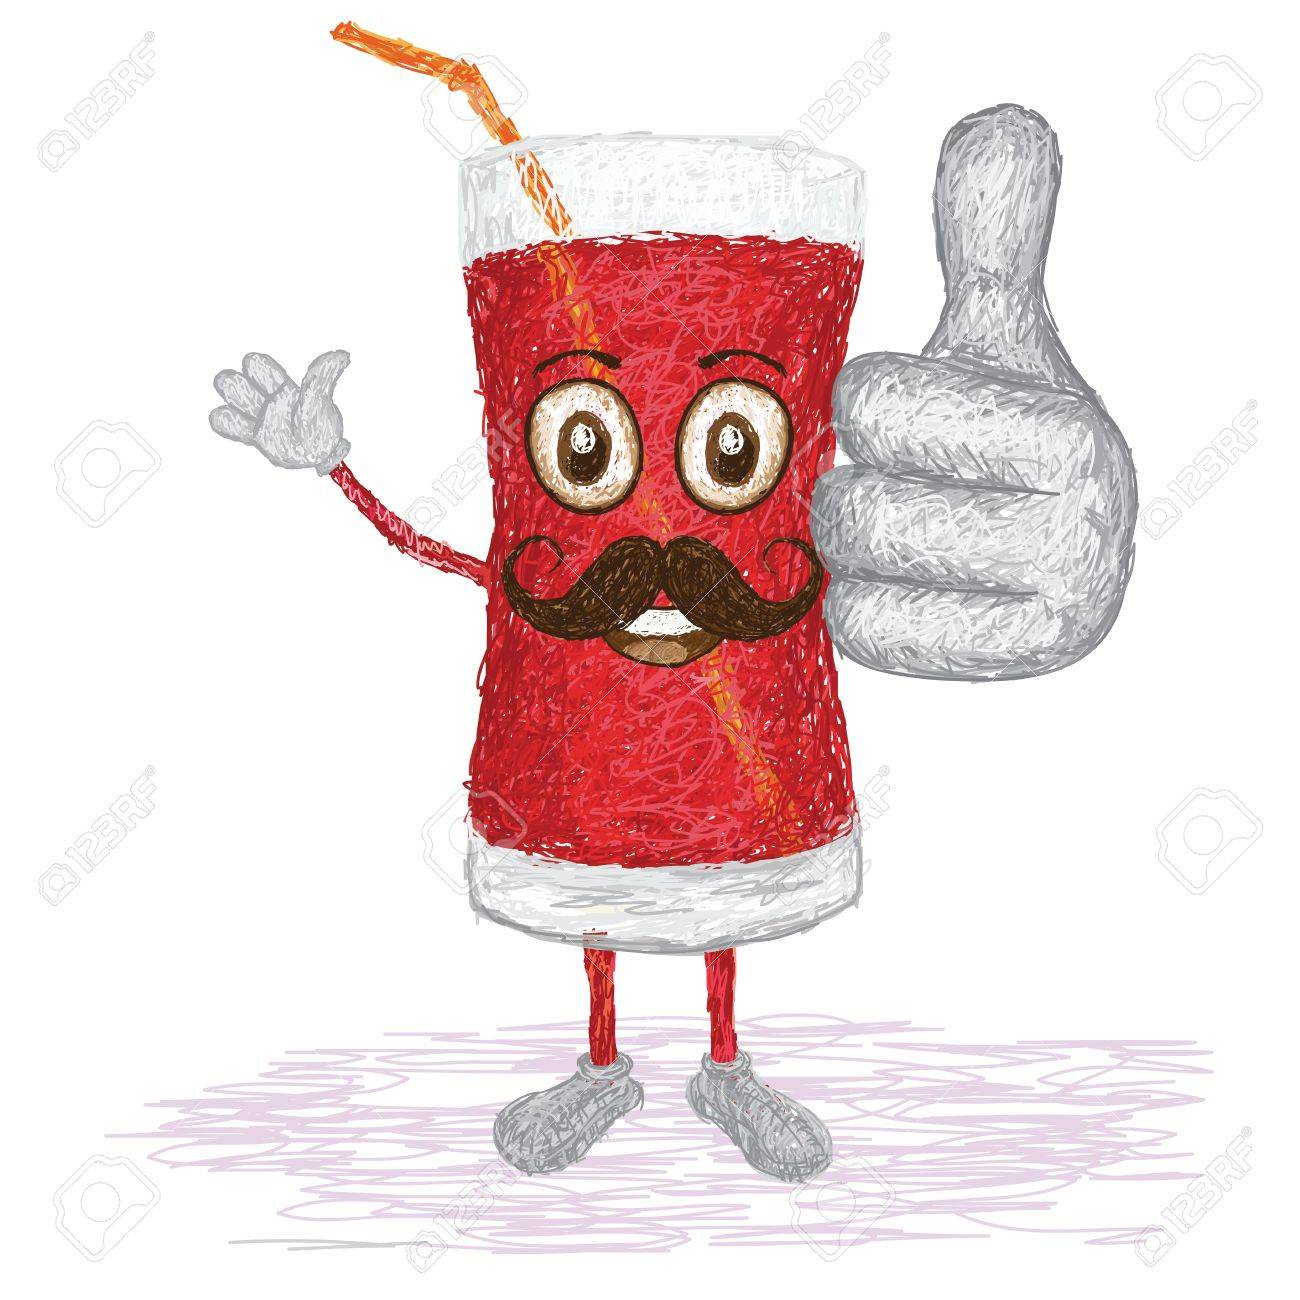 Unique style illustration of funny happy cartoon glass of